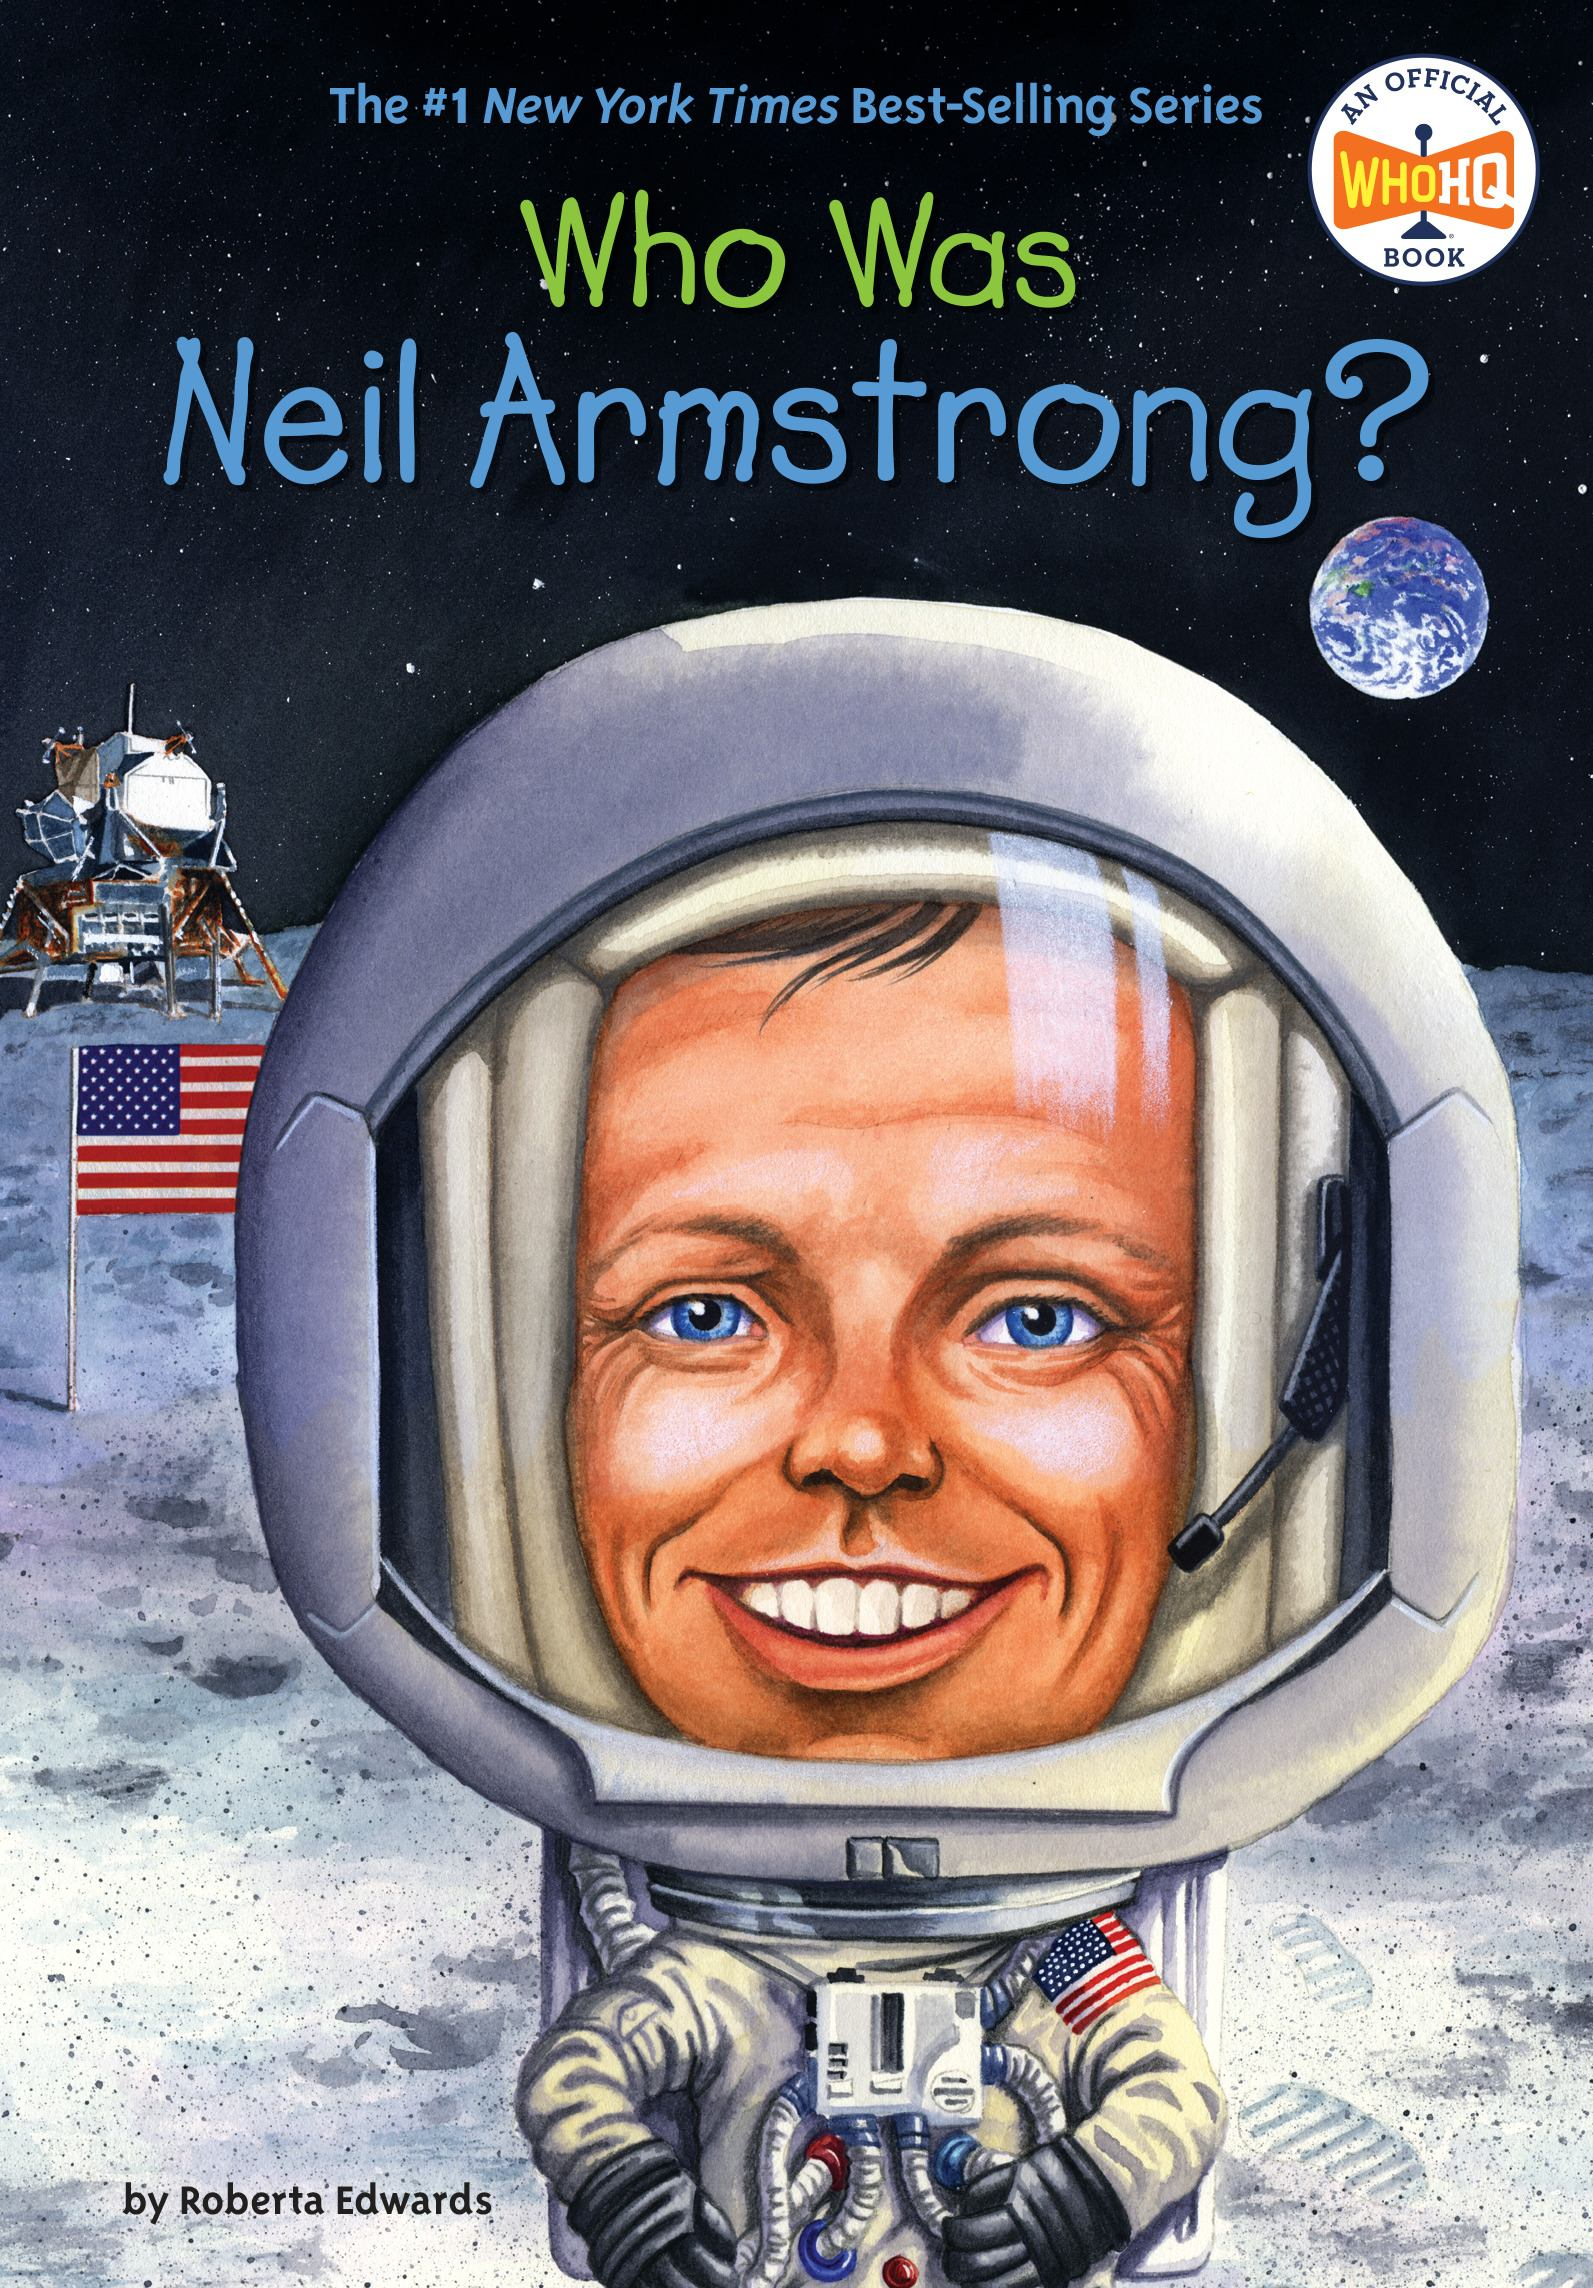 book cover image: Who Was Neil Armstrong?